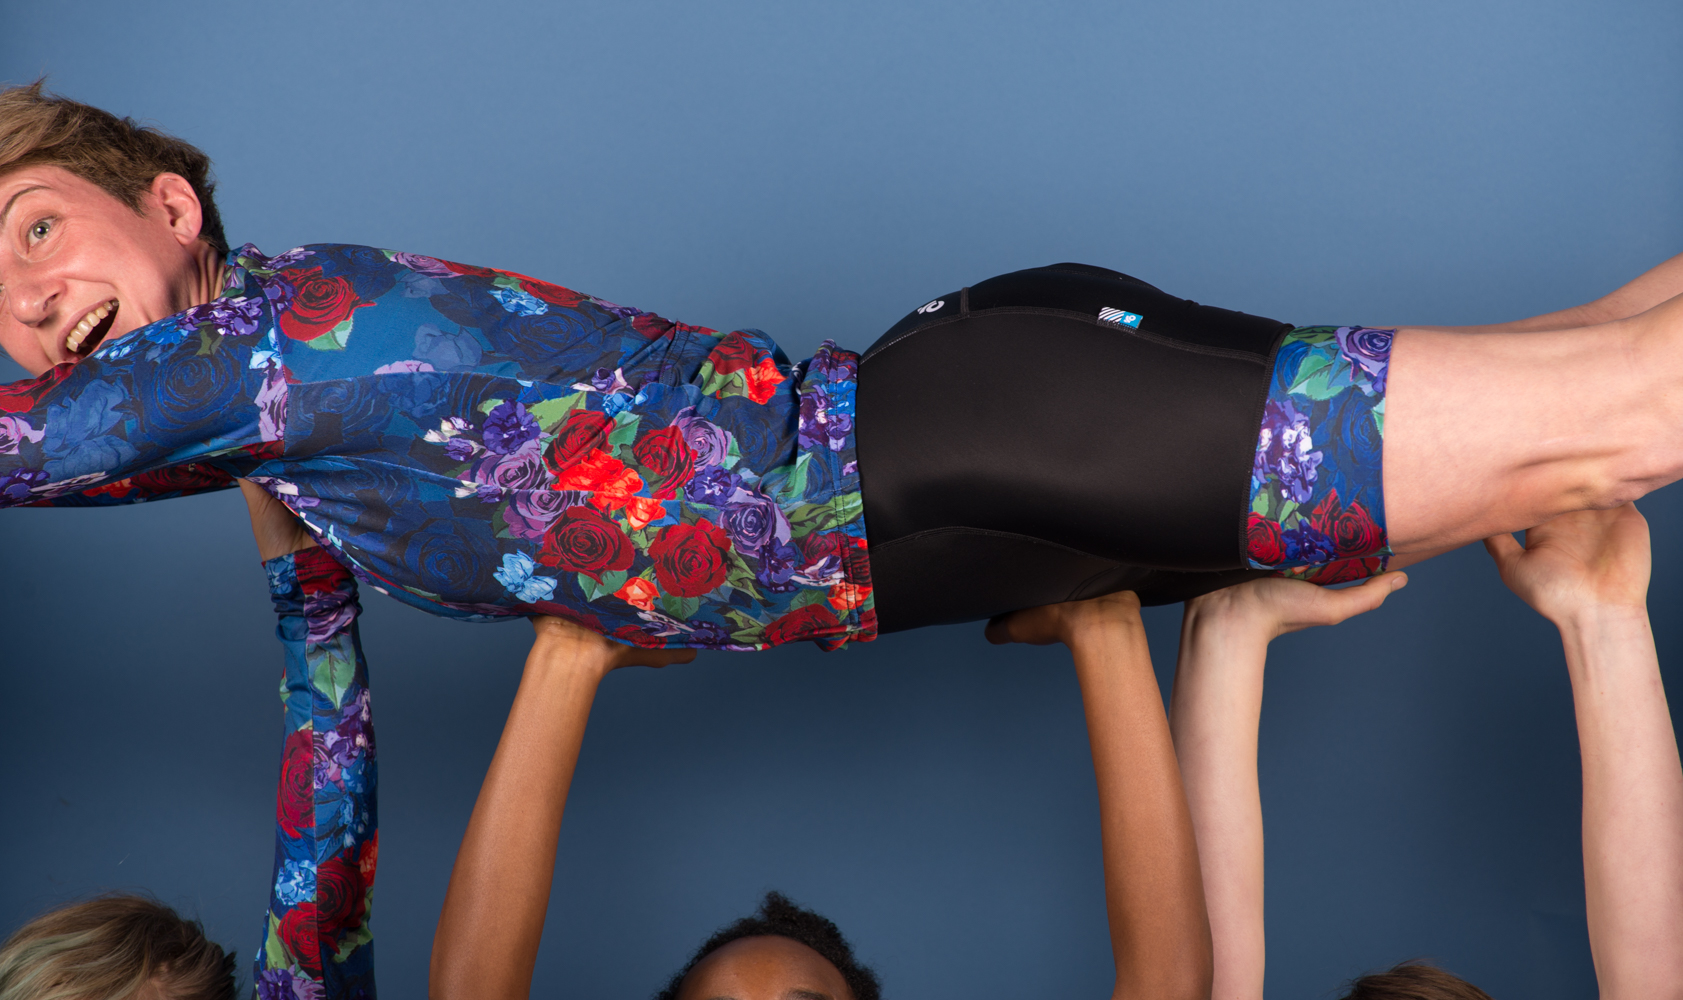 A great, fun photo-shoot with  Crit Nasty  to highlight their kits, now up for sale on their website.